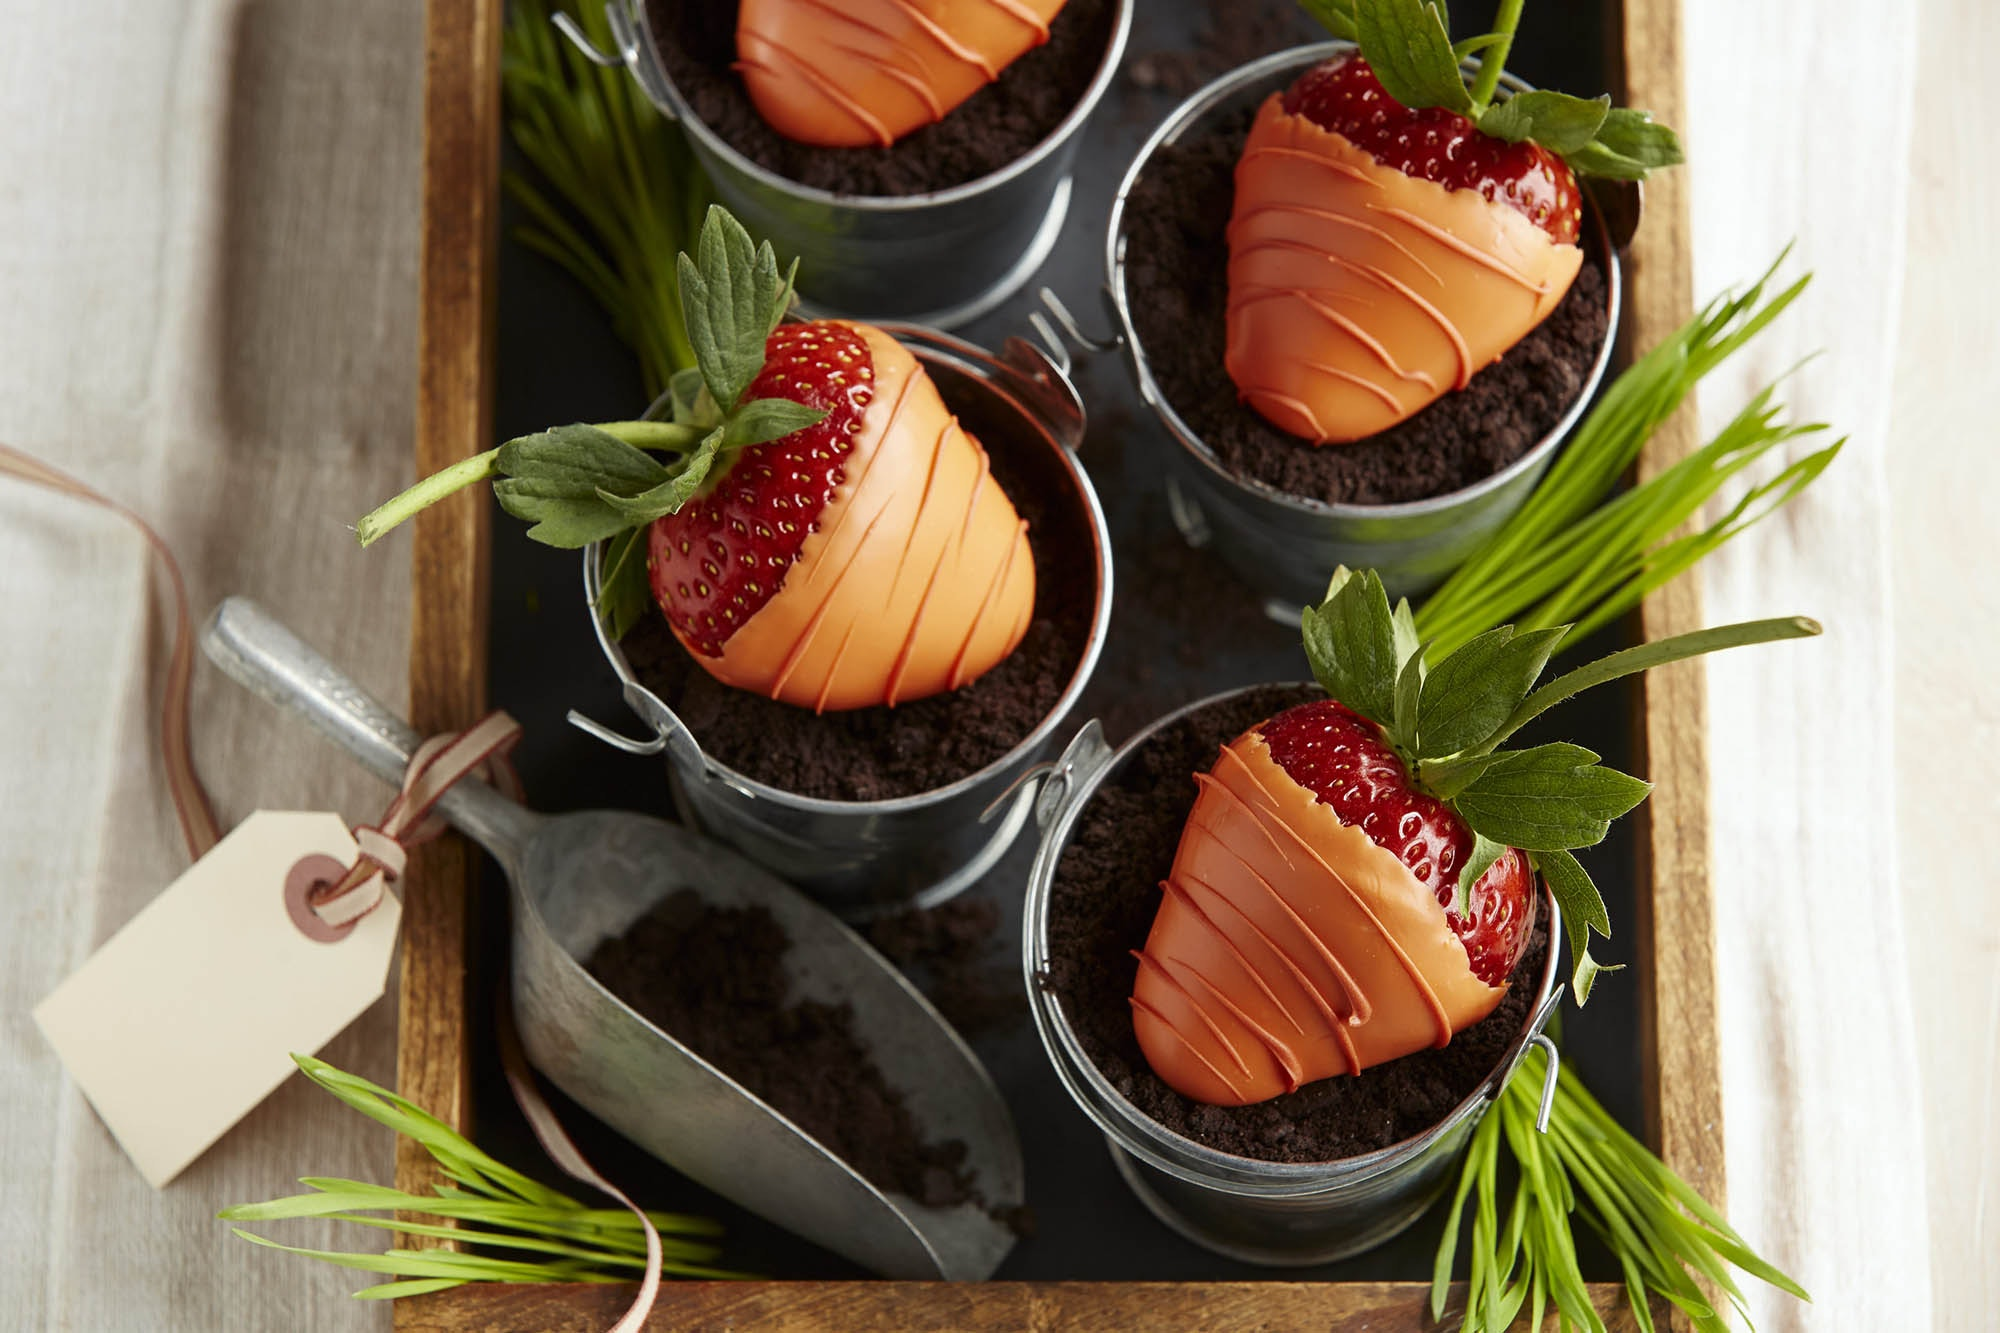 Chocolate covered strawberries decorated to look like carrots in pots of dirt